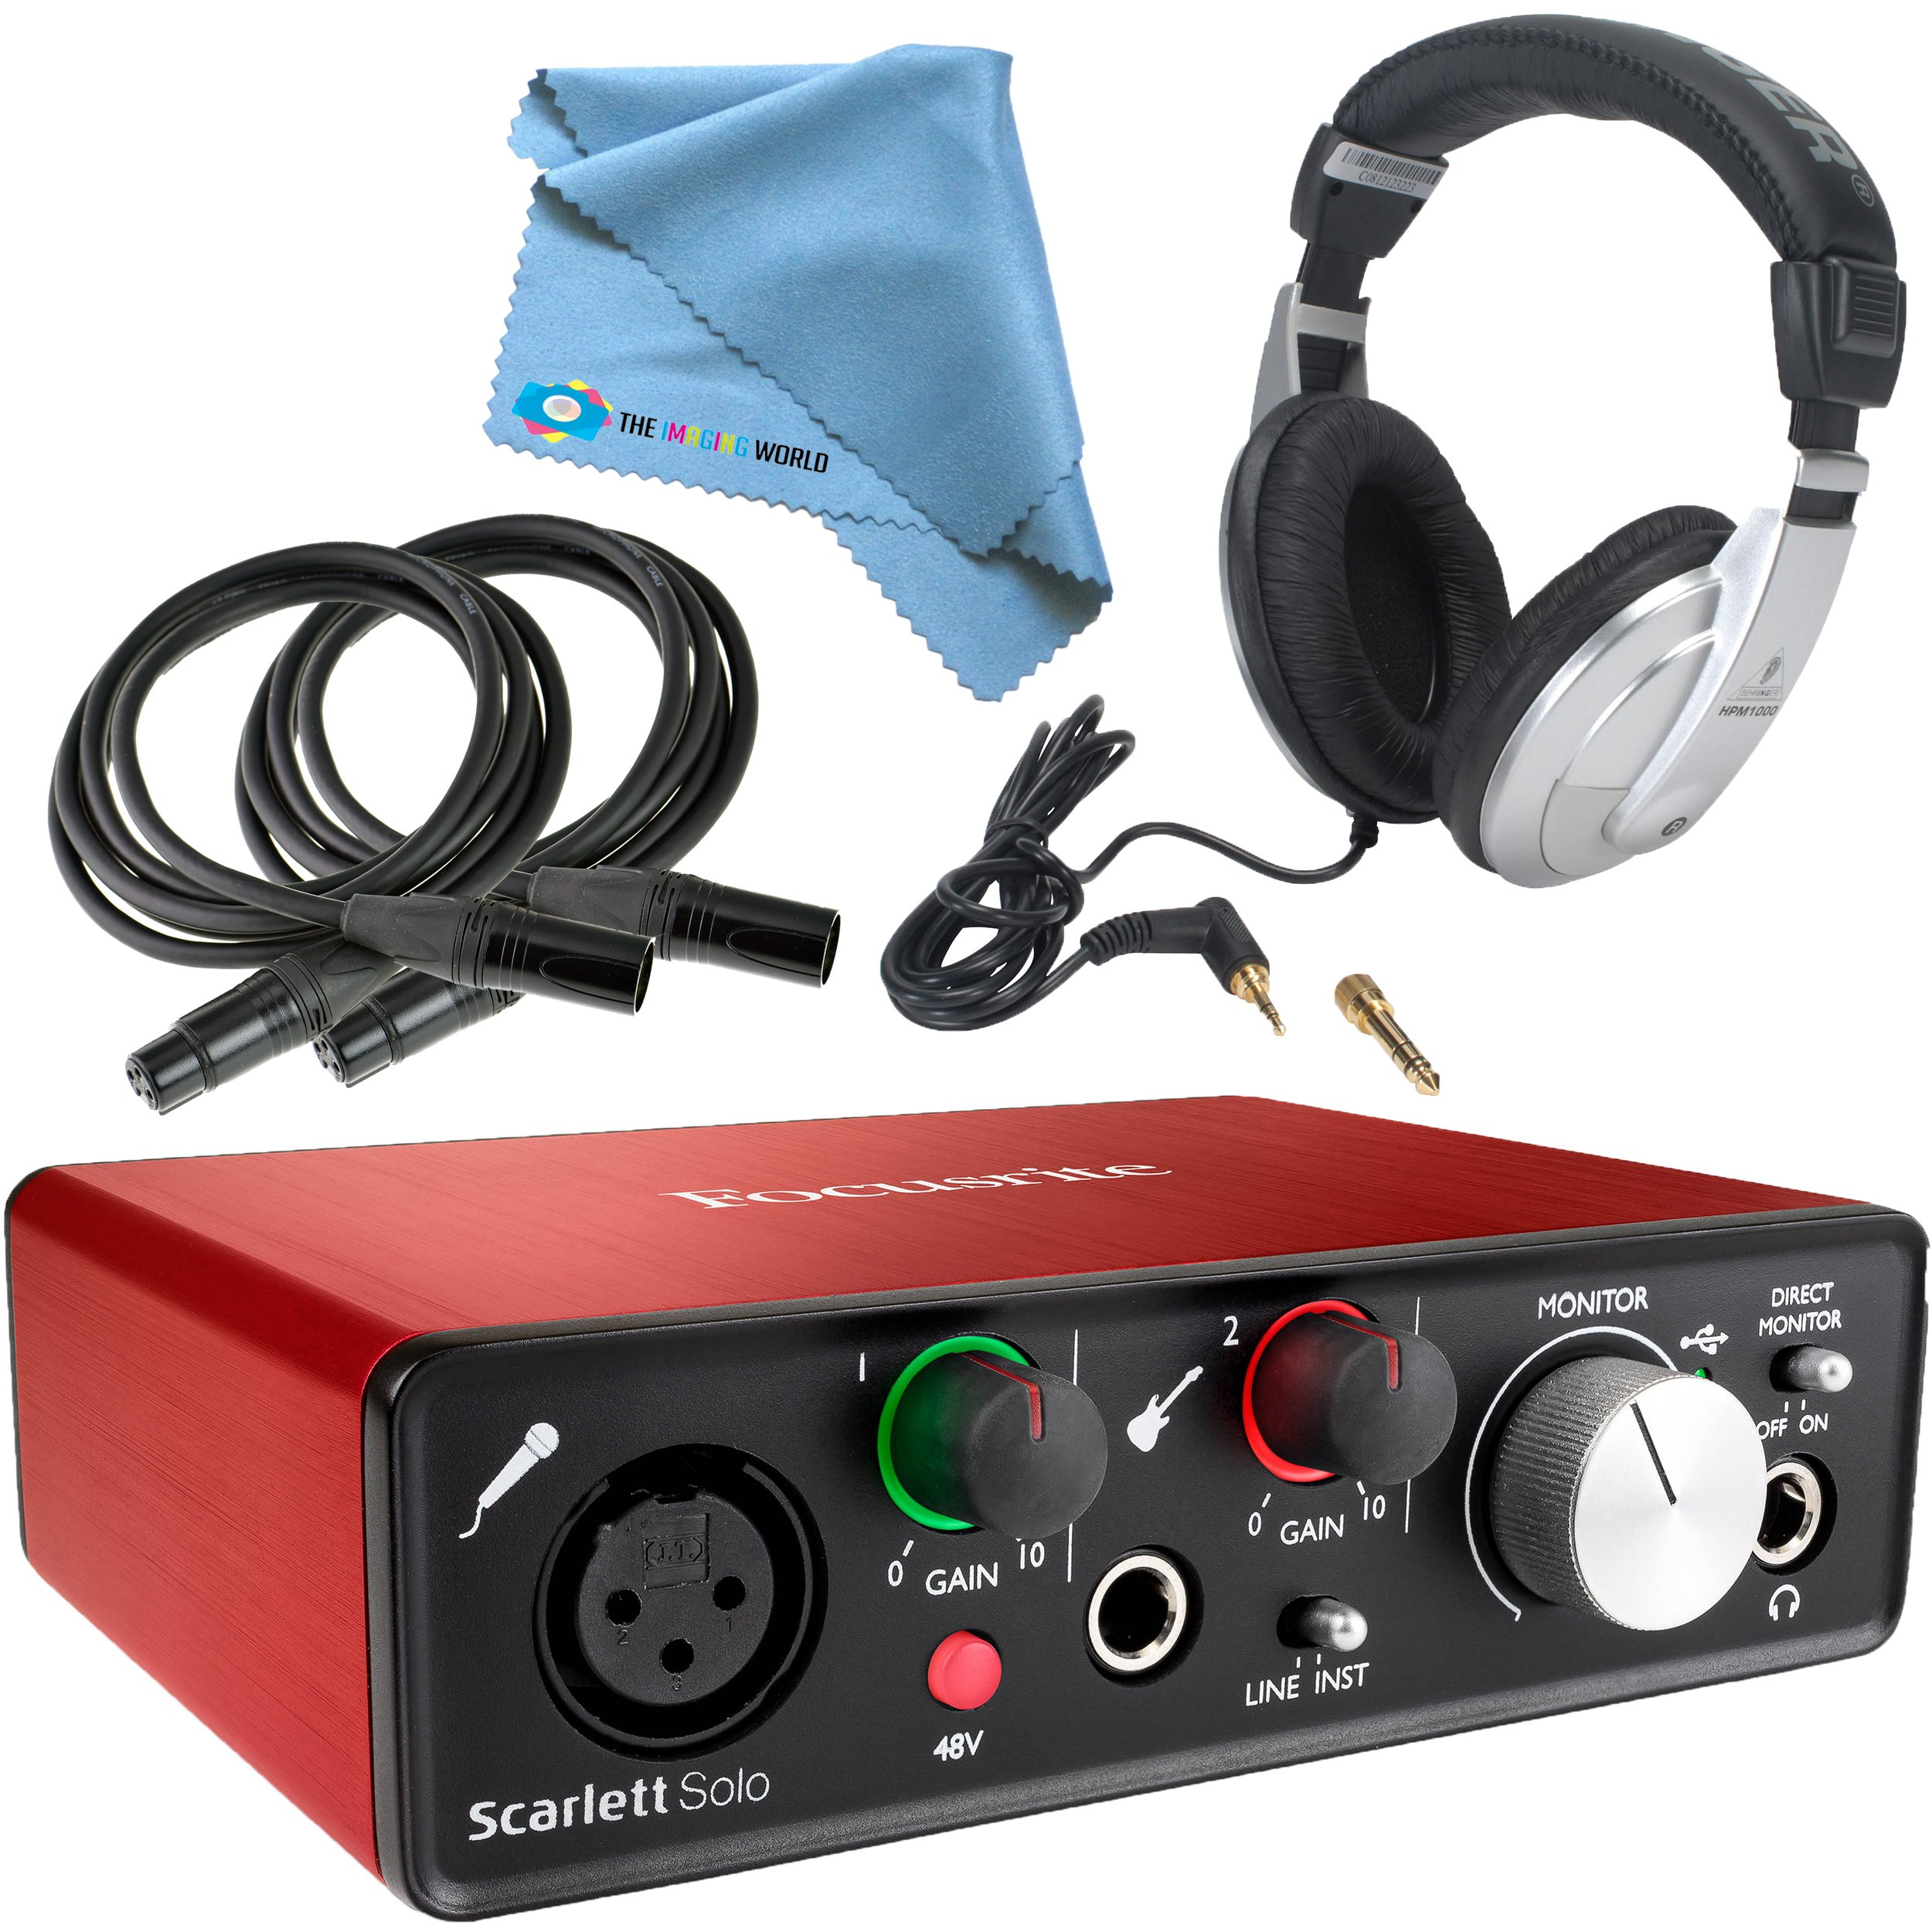 Focusrite Scarlett Solo (2nd Gen) USB Audio Interface with Pro Tools | First + Headphones, 2x 10 ft. Microphone Cables, Cleaning Cloth by Focusrite